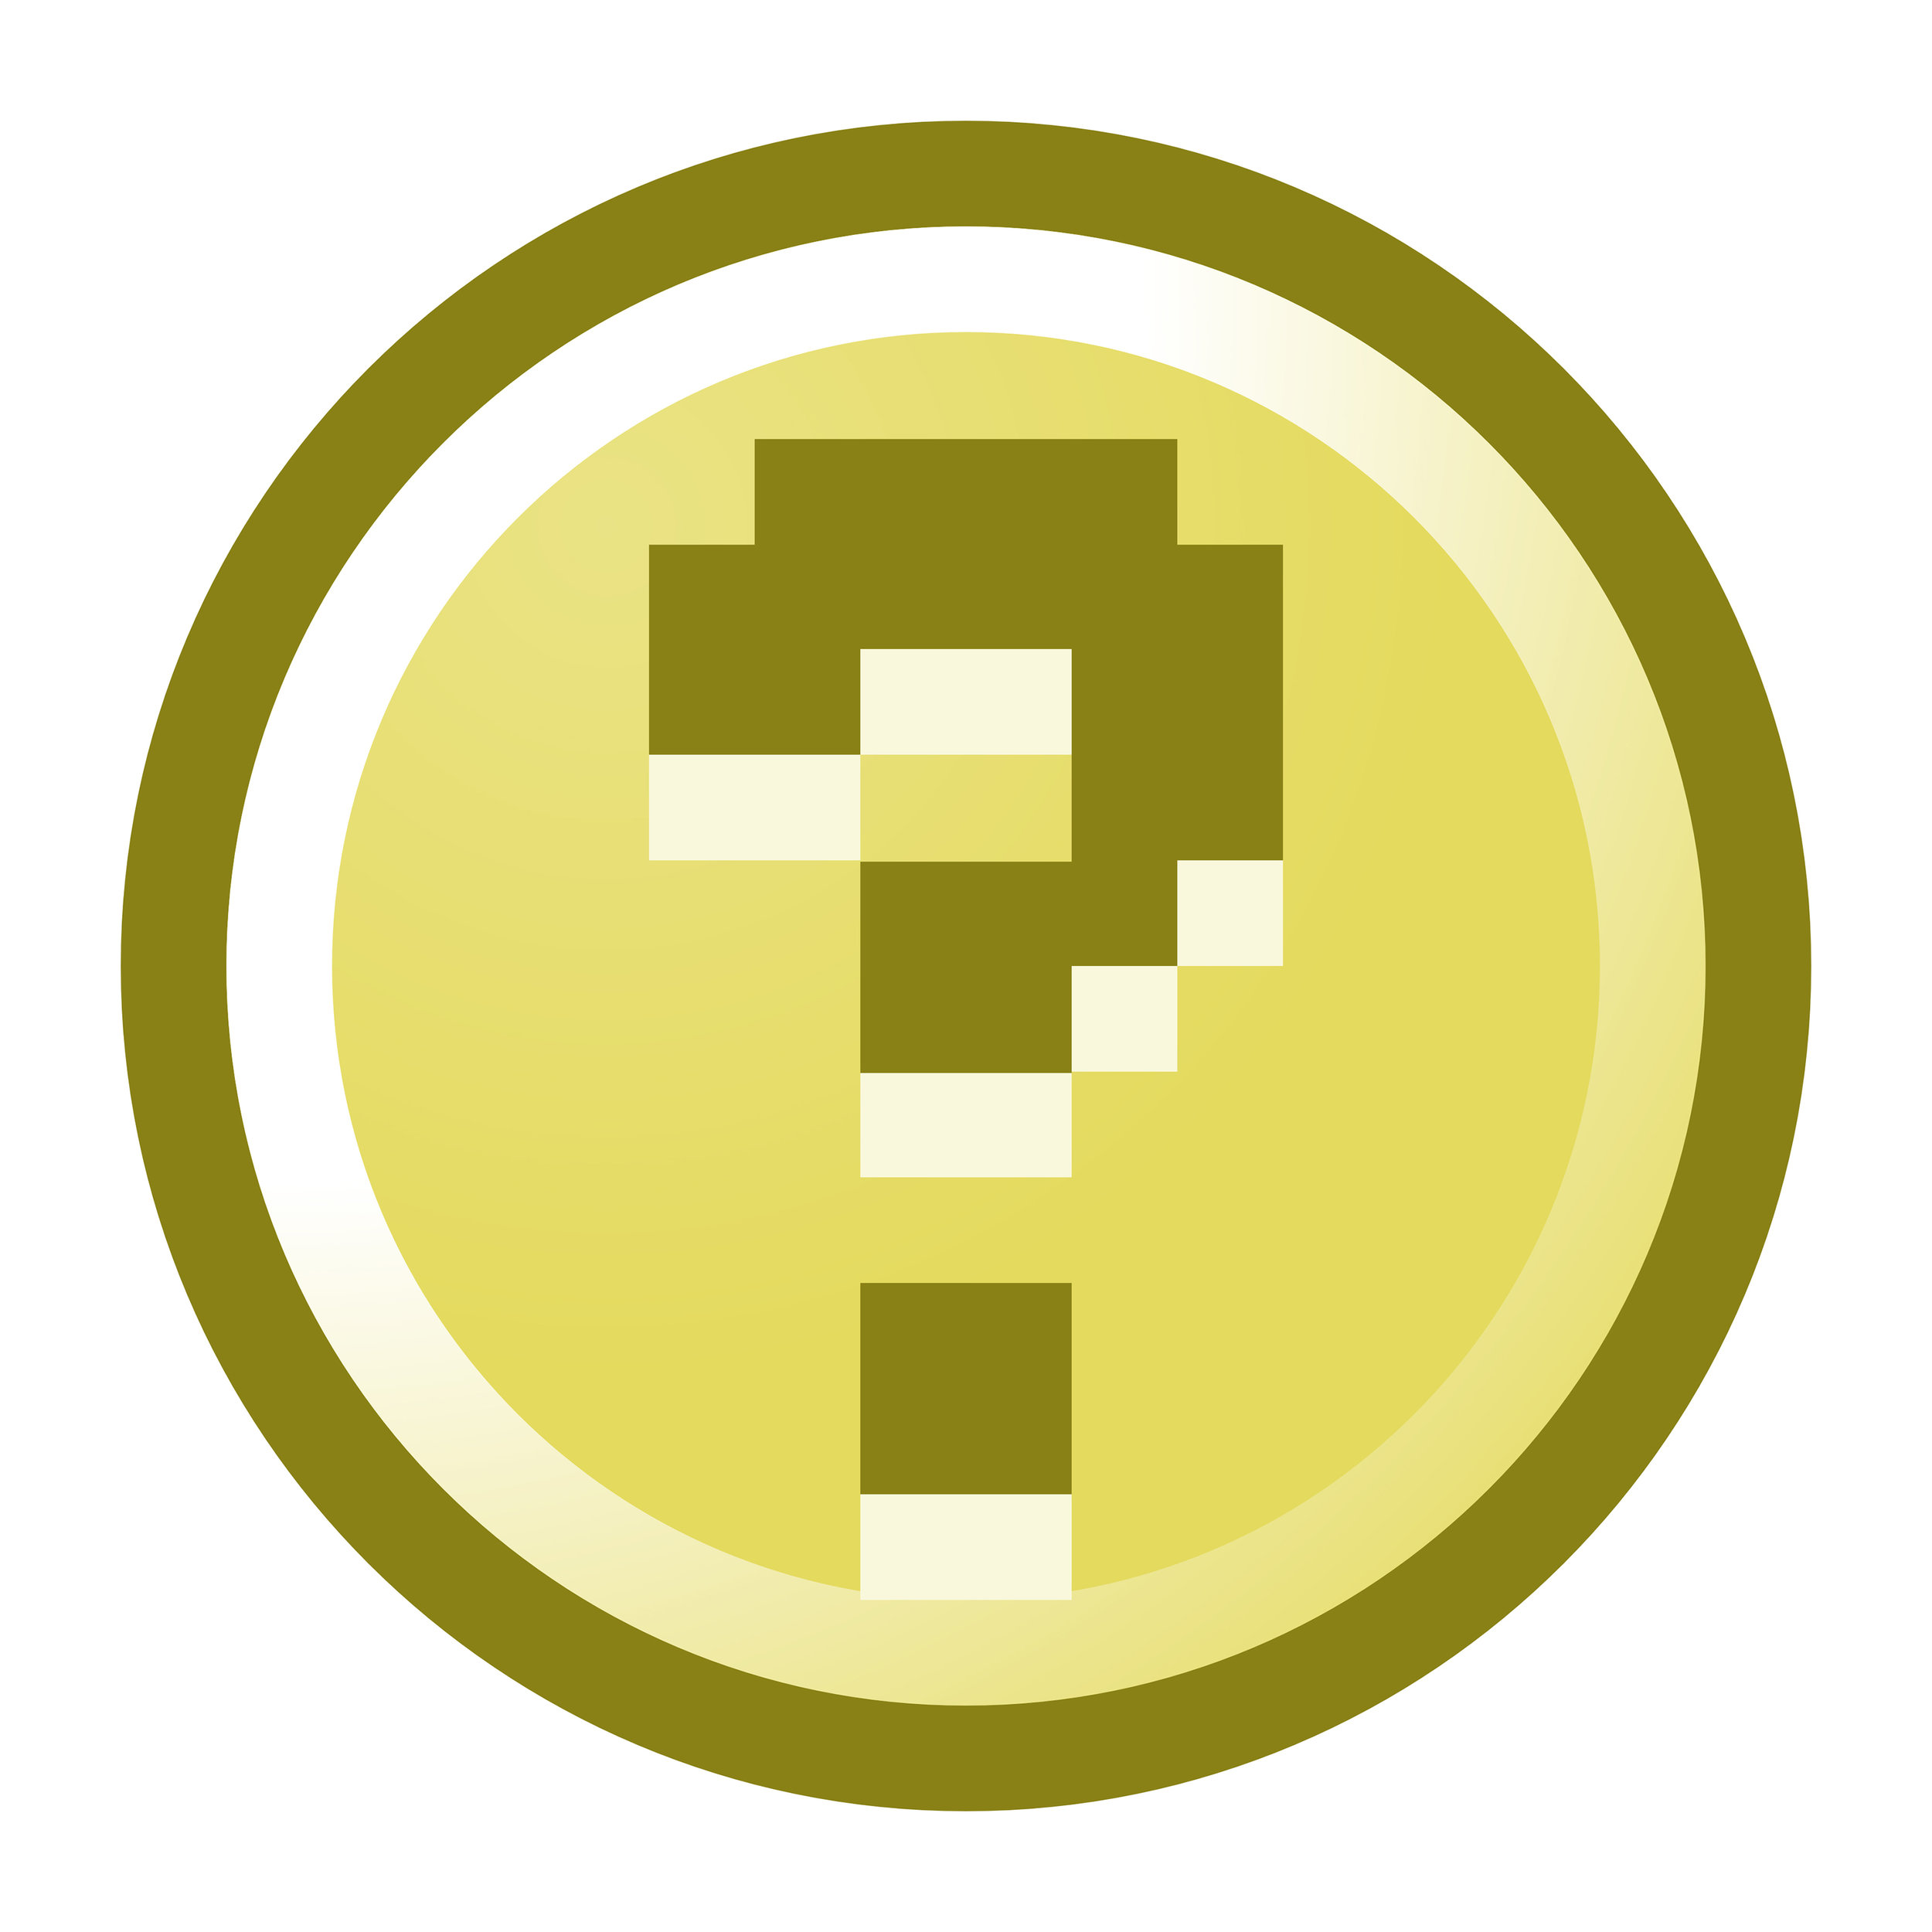 12-Free-Vector-Illustration-Of-A-Question-Mark-Icon.jpg